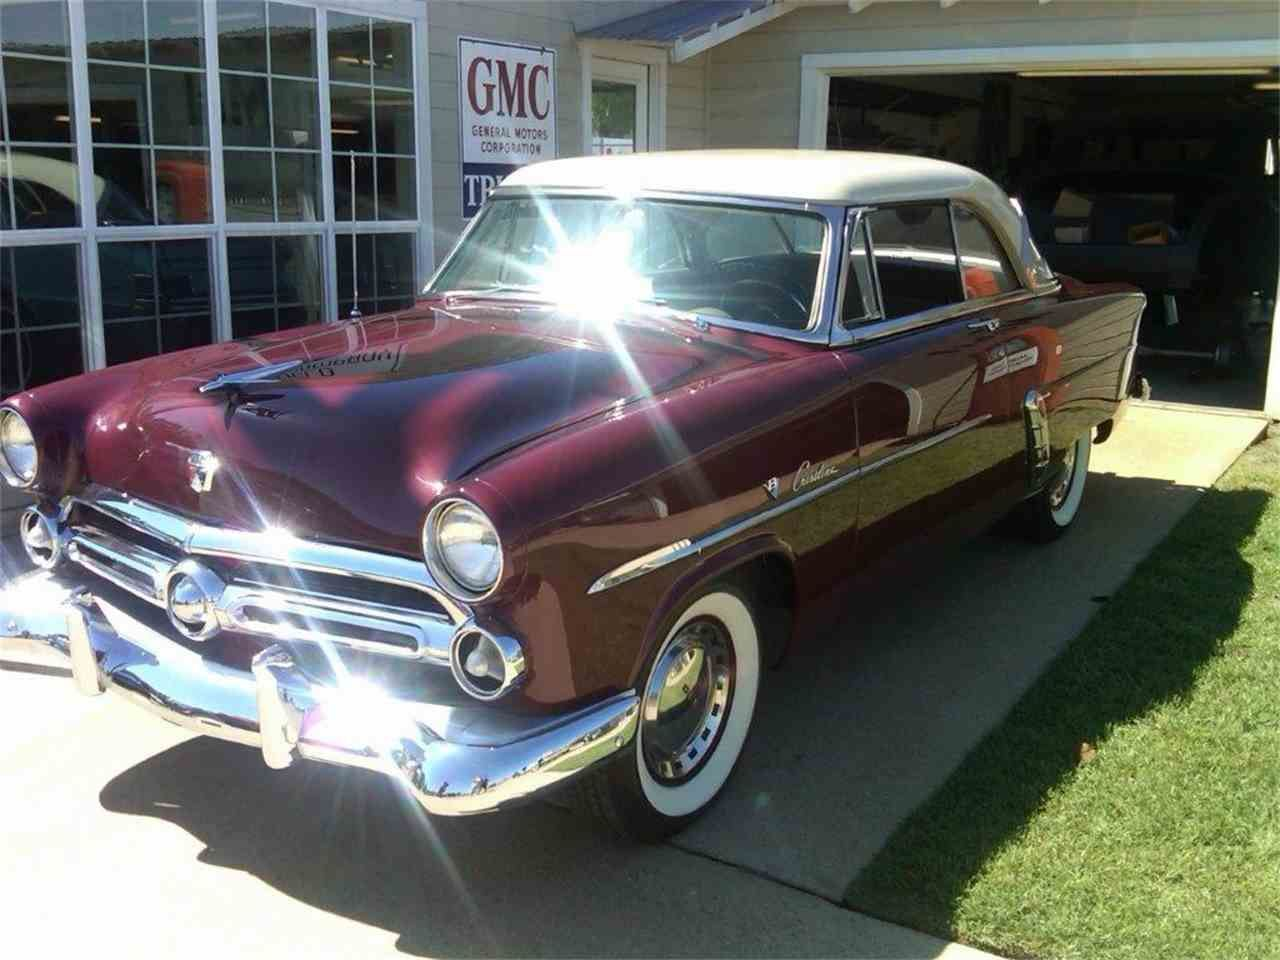 New Car. Old Car: 1952 Ford Victoria | https://newcaroldcar.blogspot ...